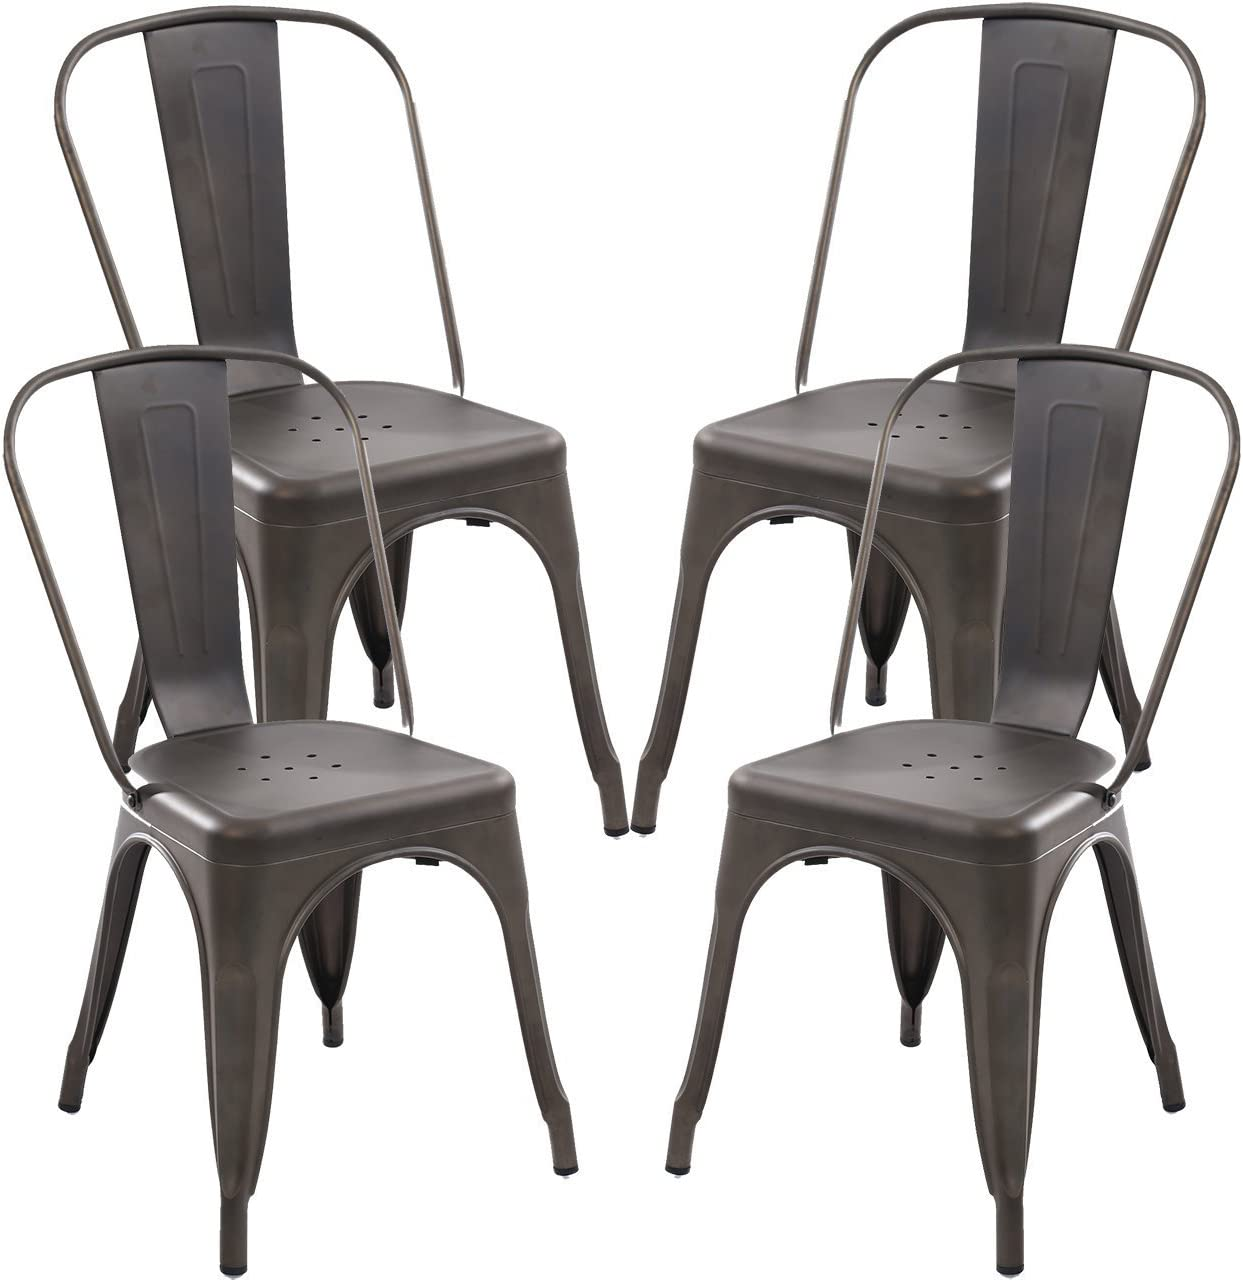 Indoor Outdoor Metal Stackable Chic Dining Bistro Cafe Side Chairs Set of 4 Rusty